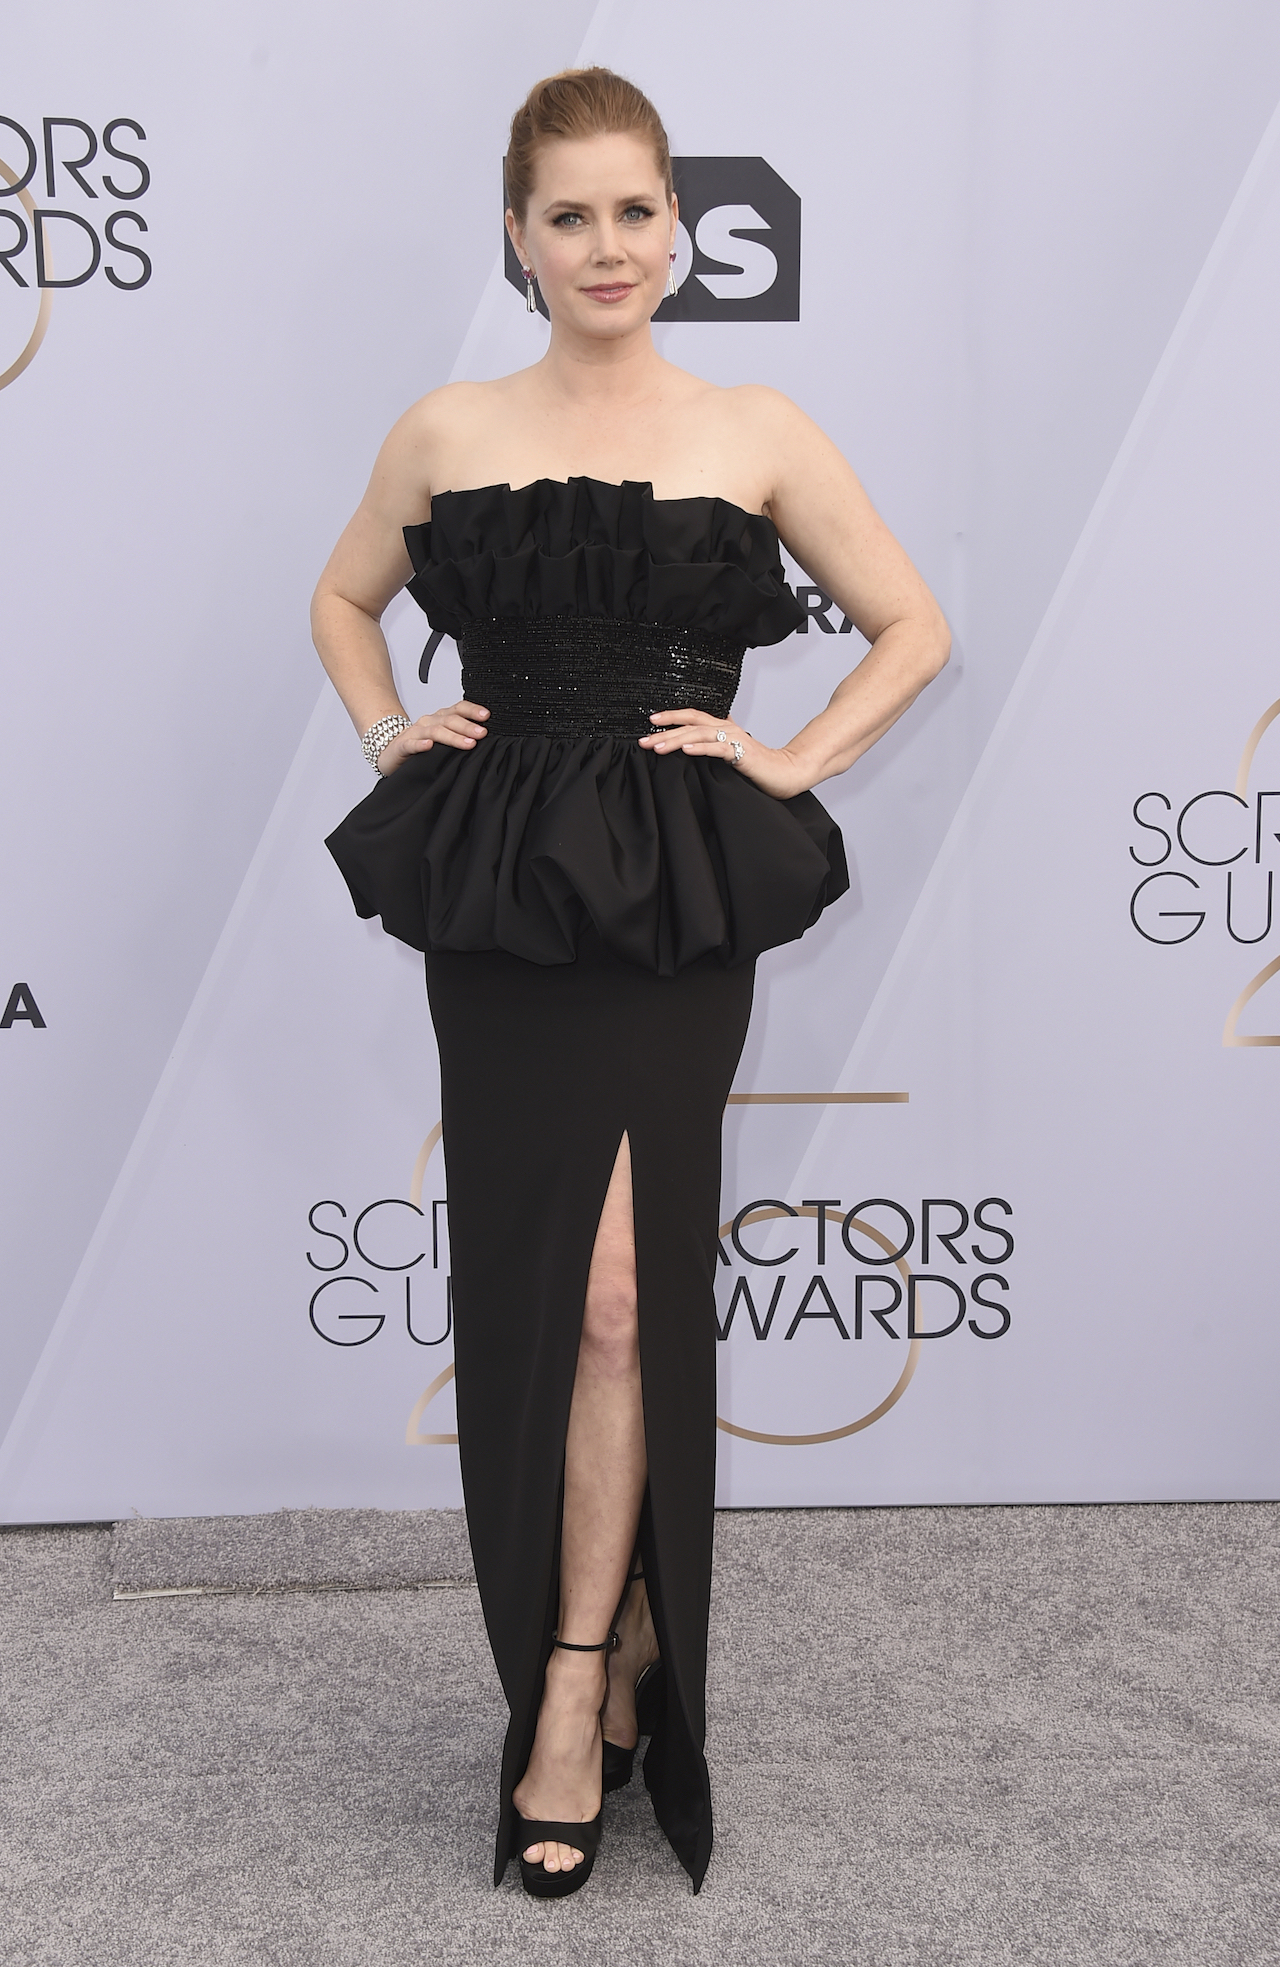 <div class='meta'><div class='origin-logo' data-origin='AP'></div><span class='caption-text' data-credit='Jordan Strauss/Invision/AP'>Amy Adams arrives at the 25th annual Screen Actors Guild Awards at the Shrine Auditorium & Expo Hall on Sunday, Jan. 27, 2019, in Los Angeles.</span></div>